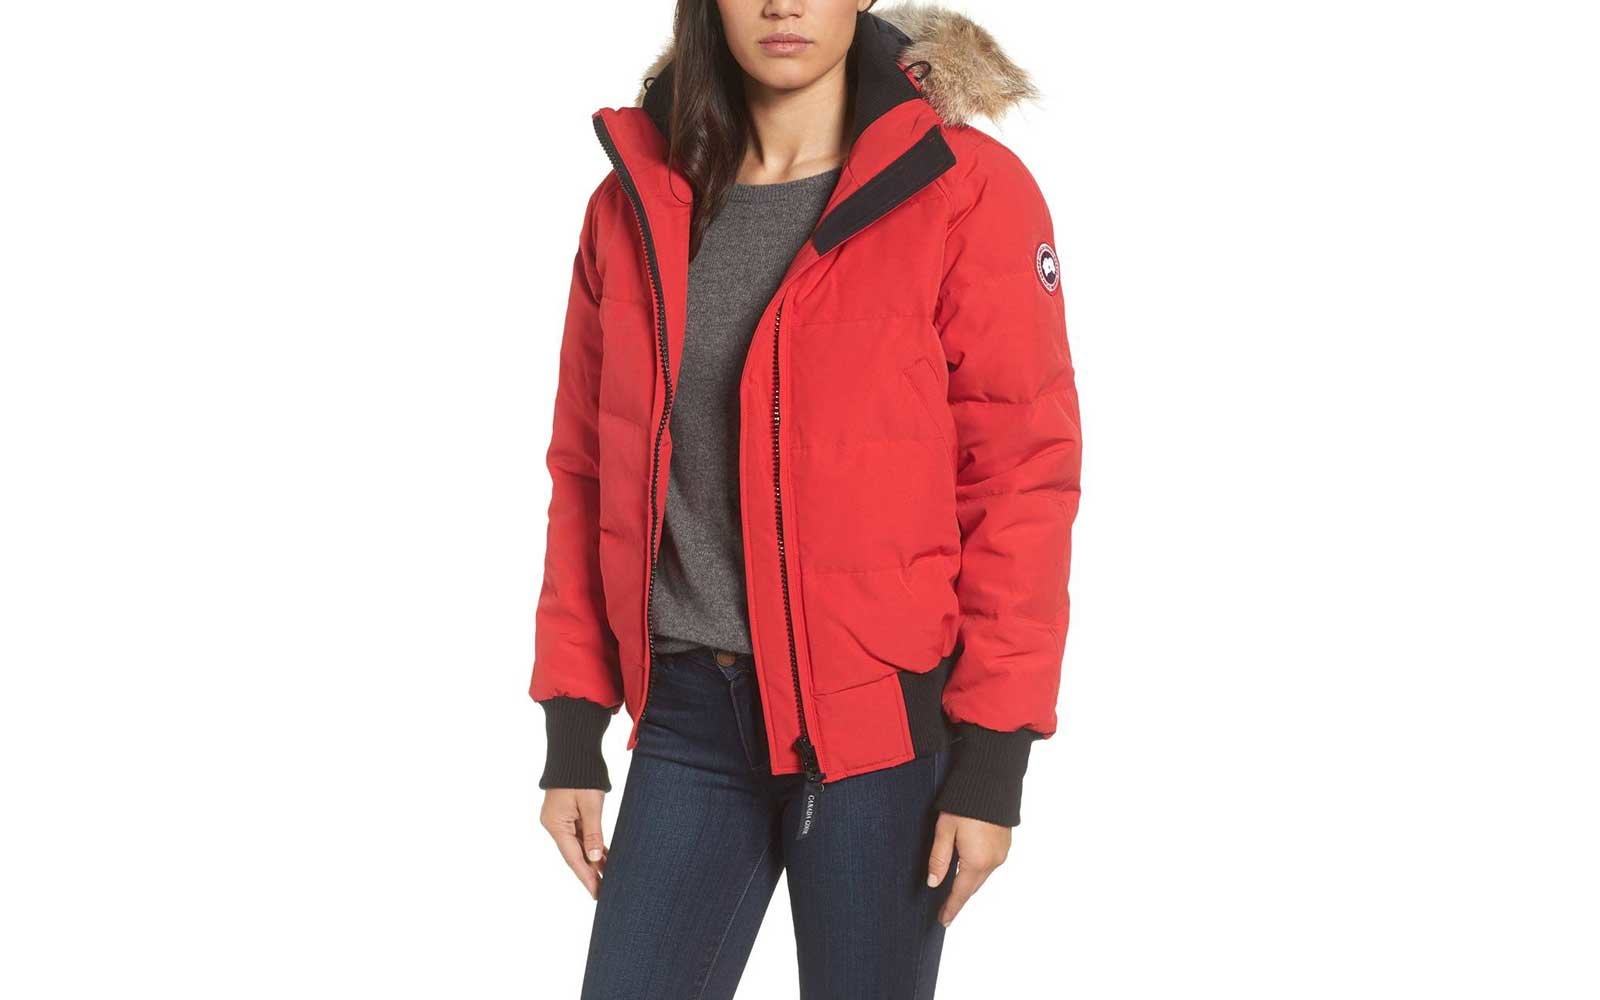 Red Canada Goose bomber jacket